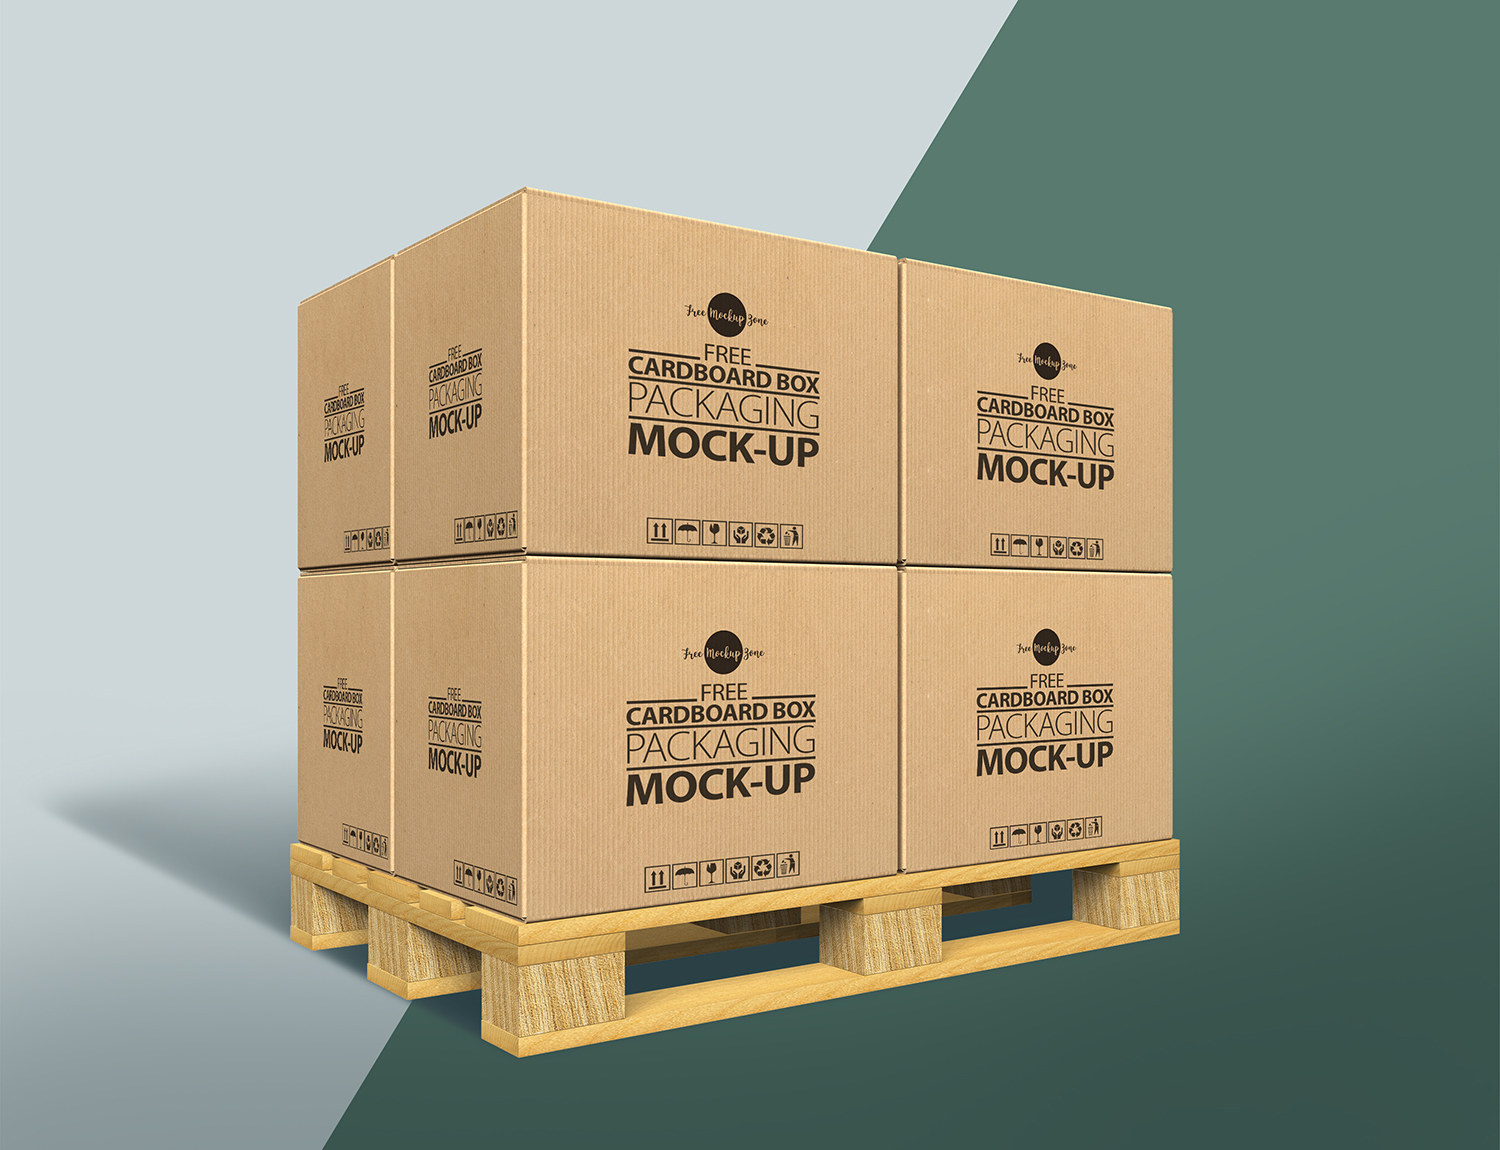 free-cardboard-box-packaging-mock-up-psd-1